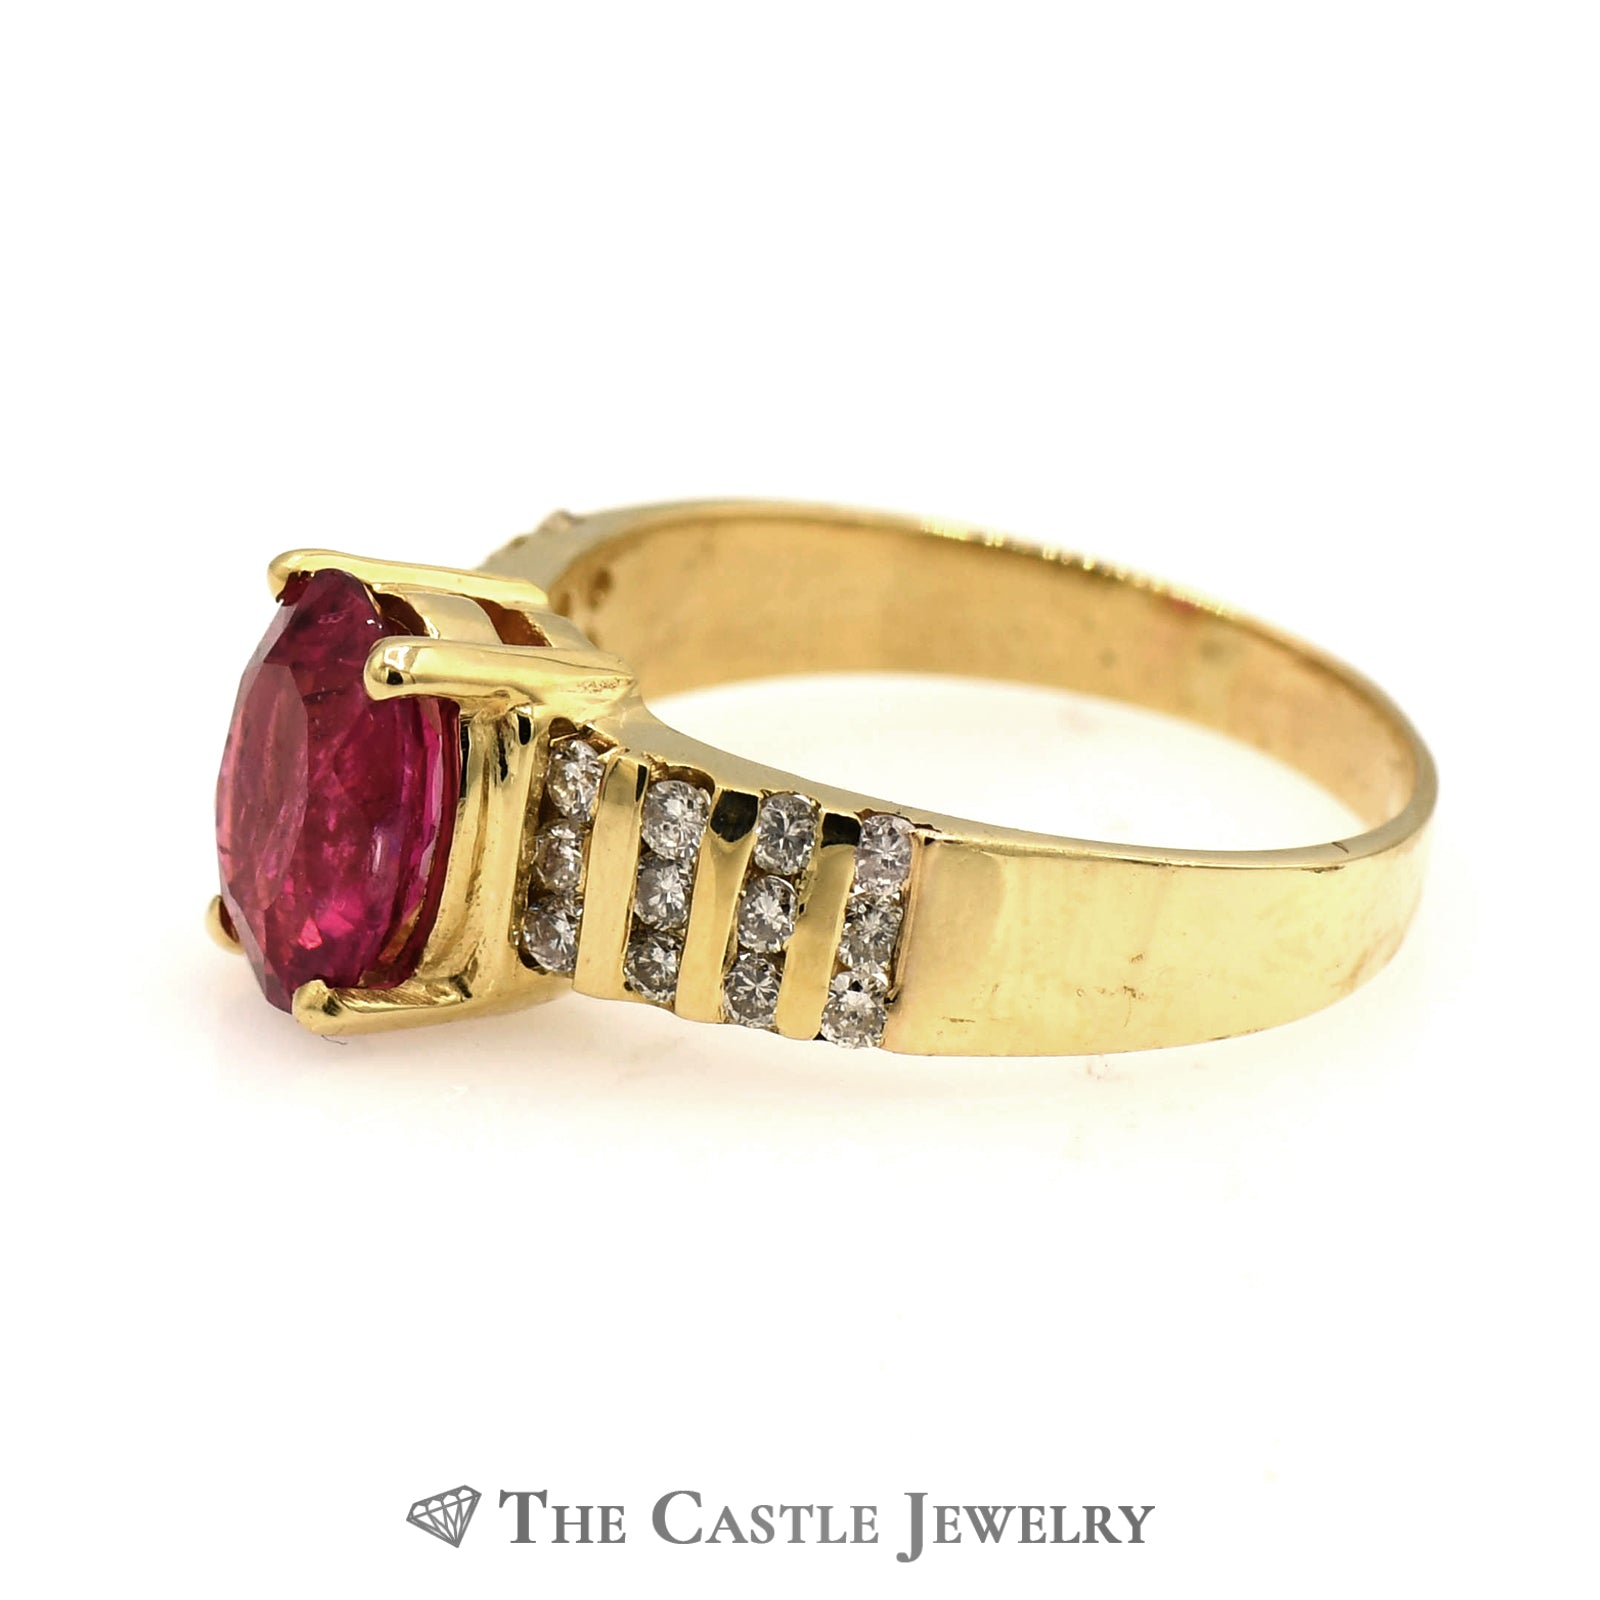 Oval Pink Tourmaline Ring with 8 Rows of Diamonds-2